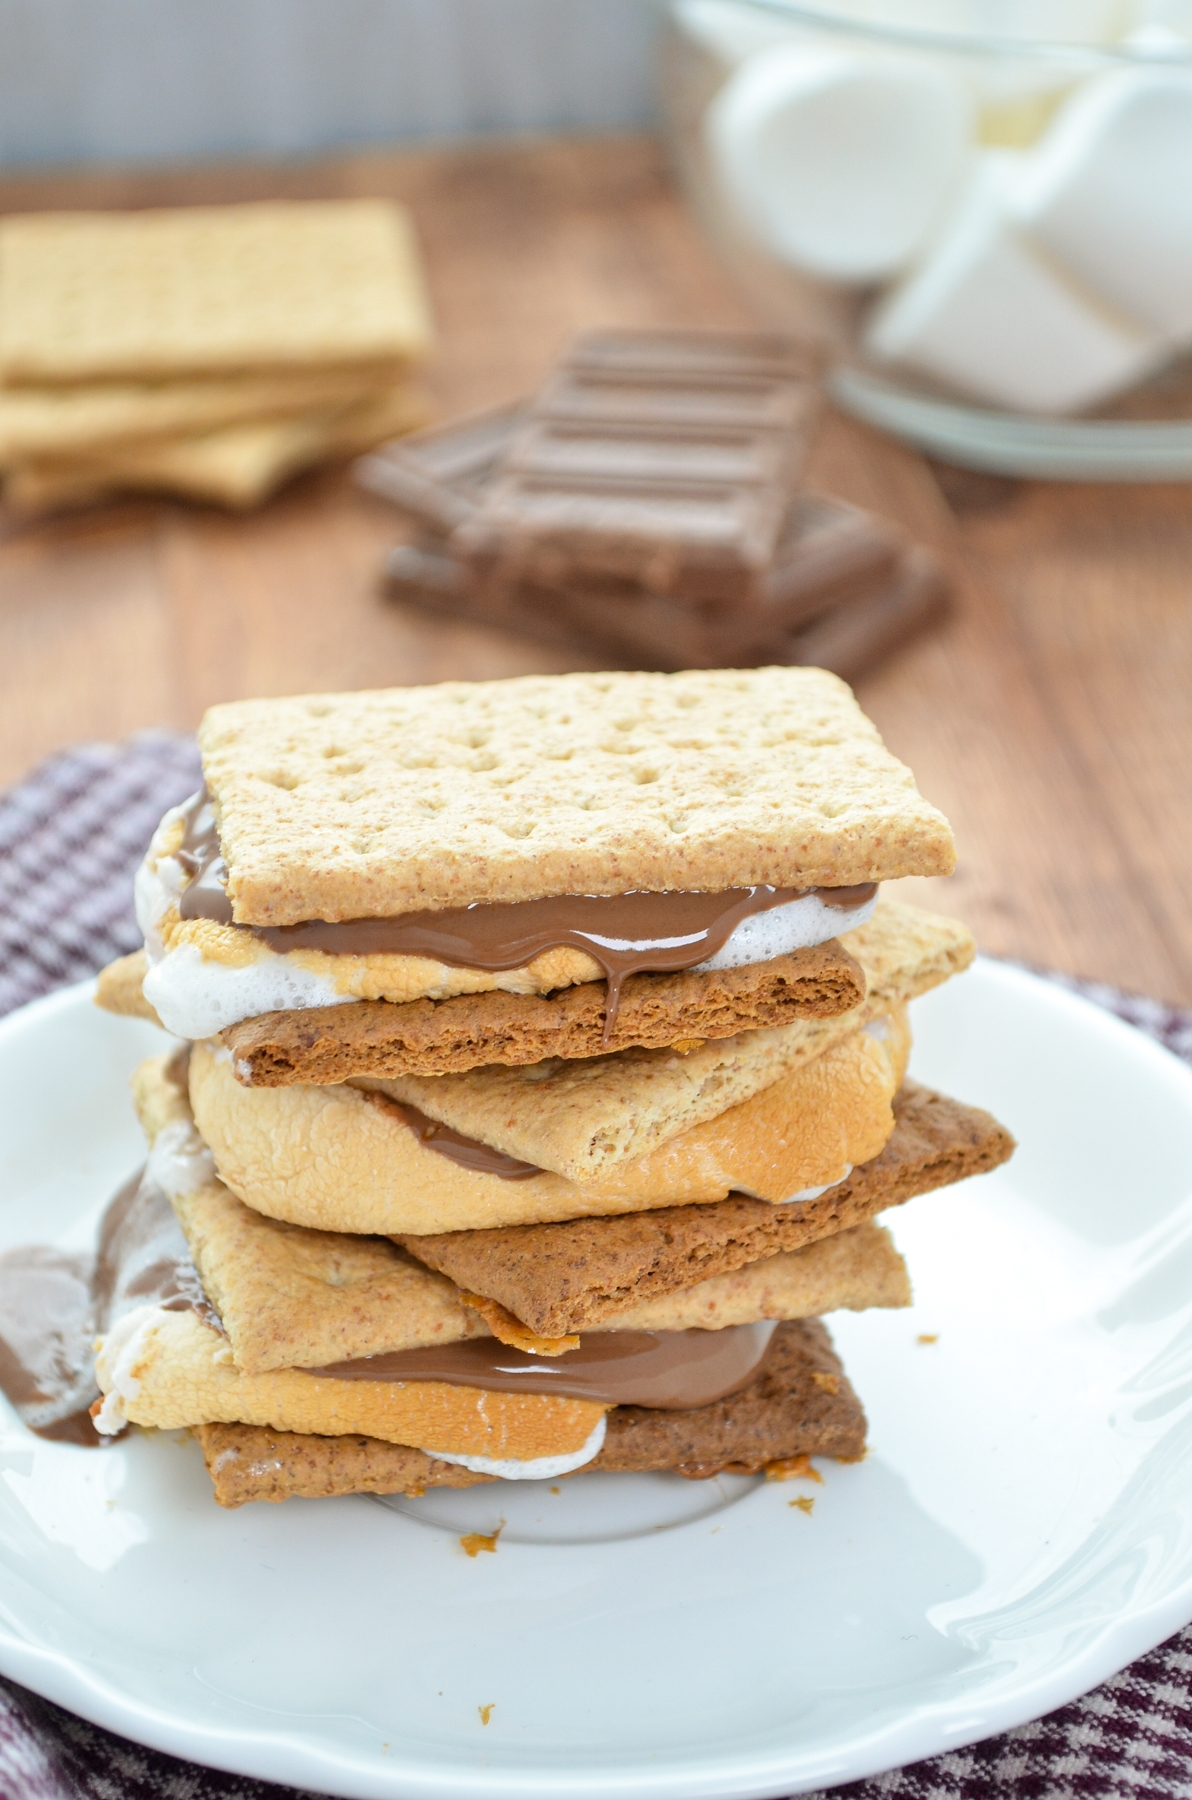 A stack of three s'mores with chocolate, marshmallows, and graham crackers in the background.